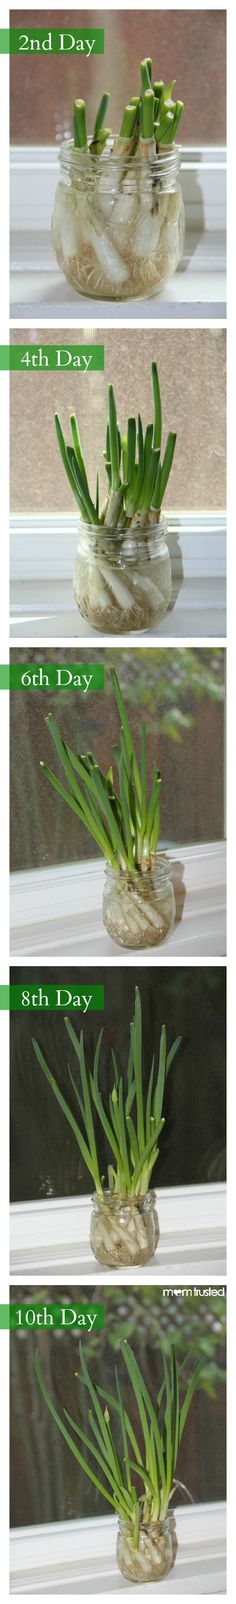 Grow green onions in only 10 days! Great gardening project for kids. I'll never buy green onions again! Green Onions Growing, Growing Veggies, Growing Plants, Indoor Garden, Garden Plants, Outdoor Gardens, Container Gardening, Gardening Tips, Comment Planter